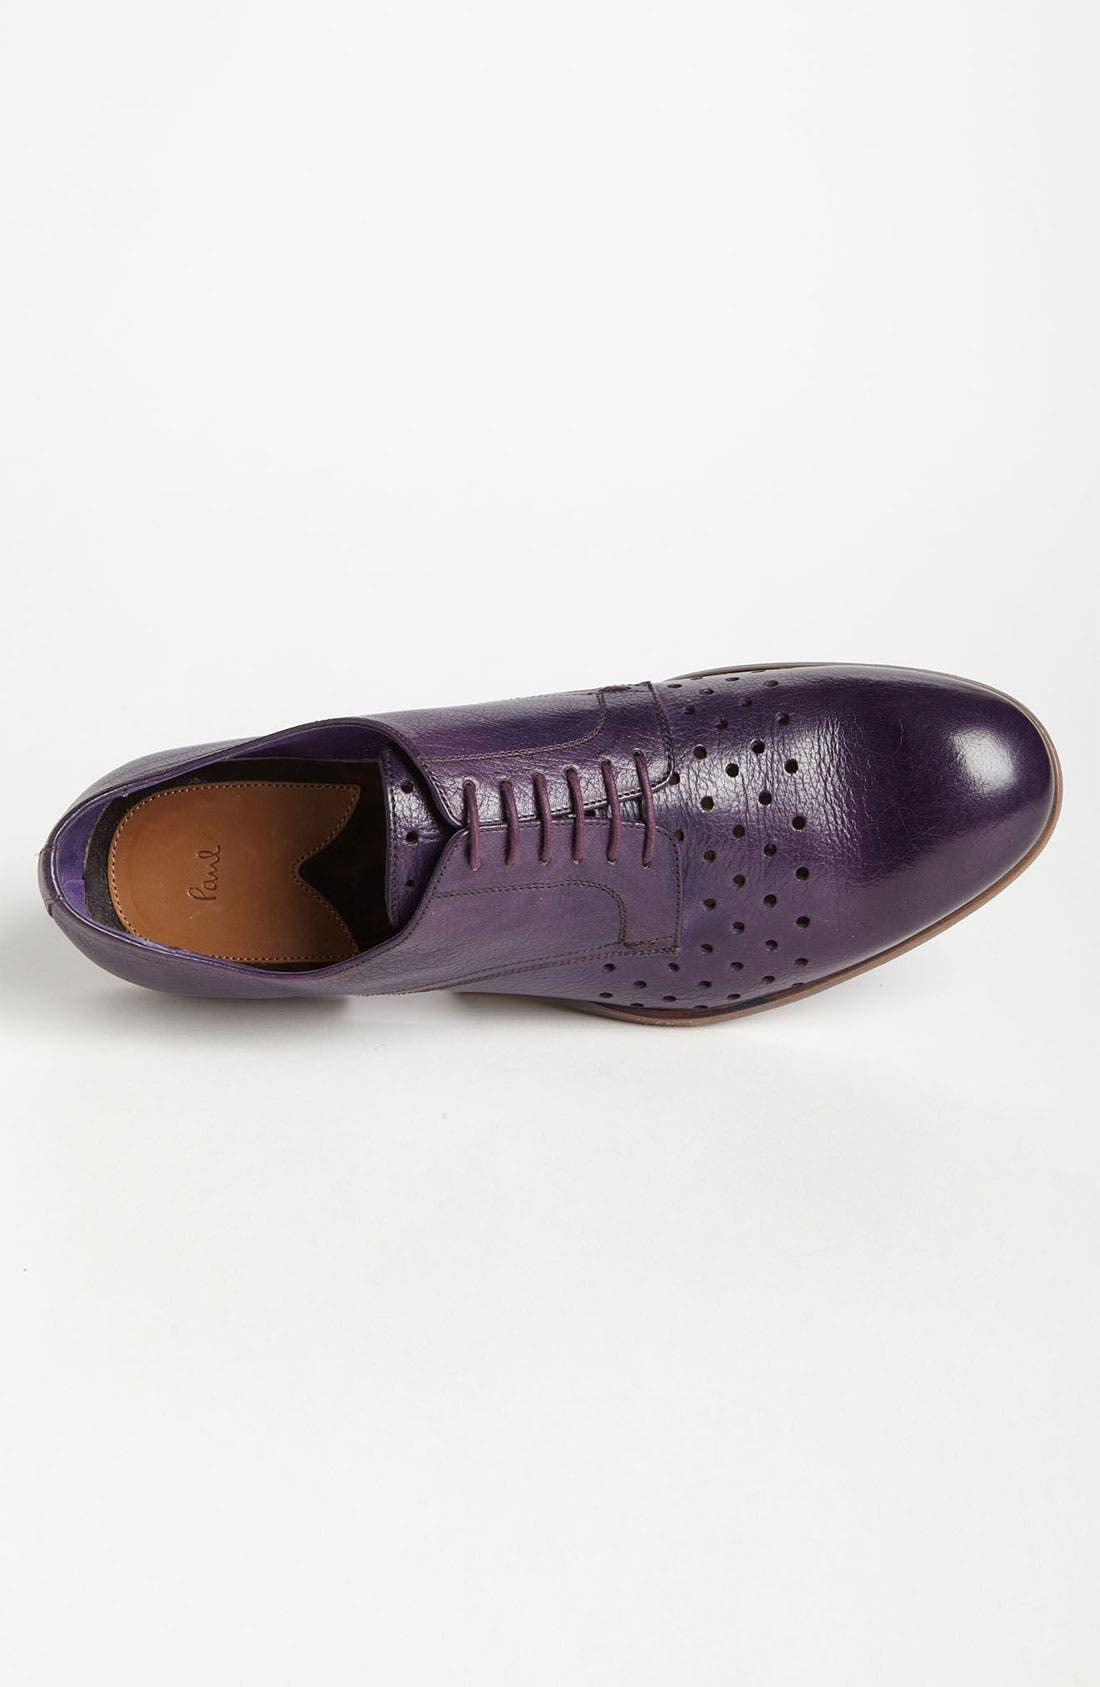 Alternate Image 3  - Paul Smith 'Seagul' Perforated Derby